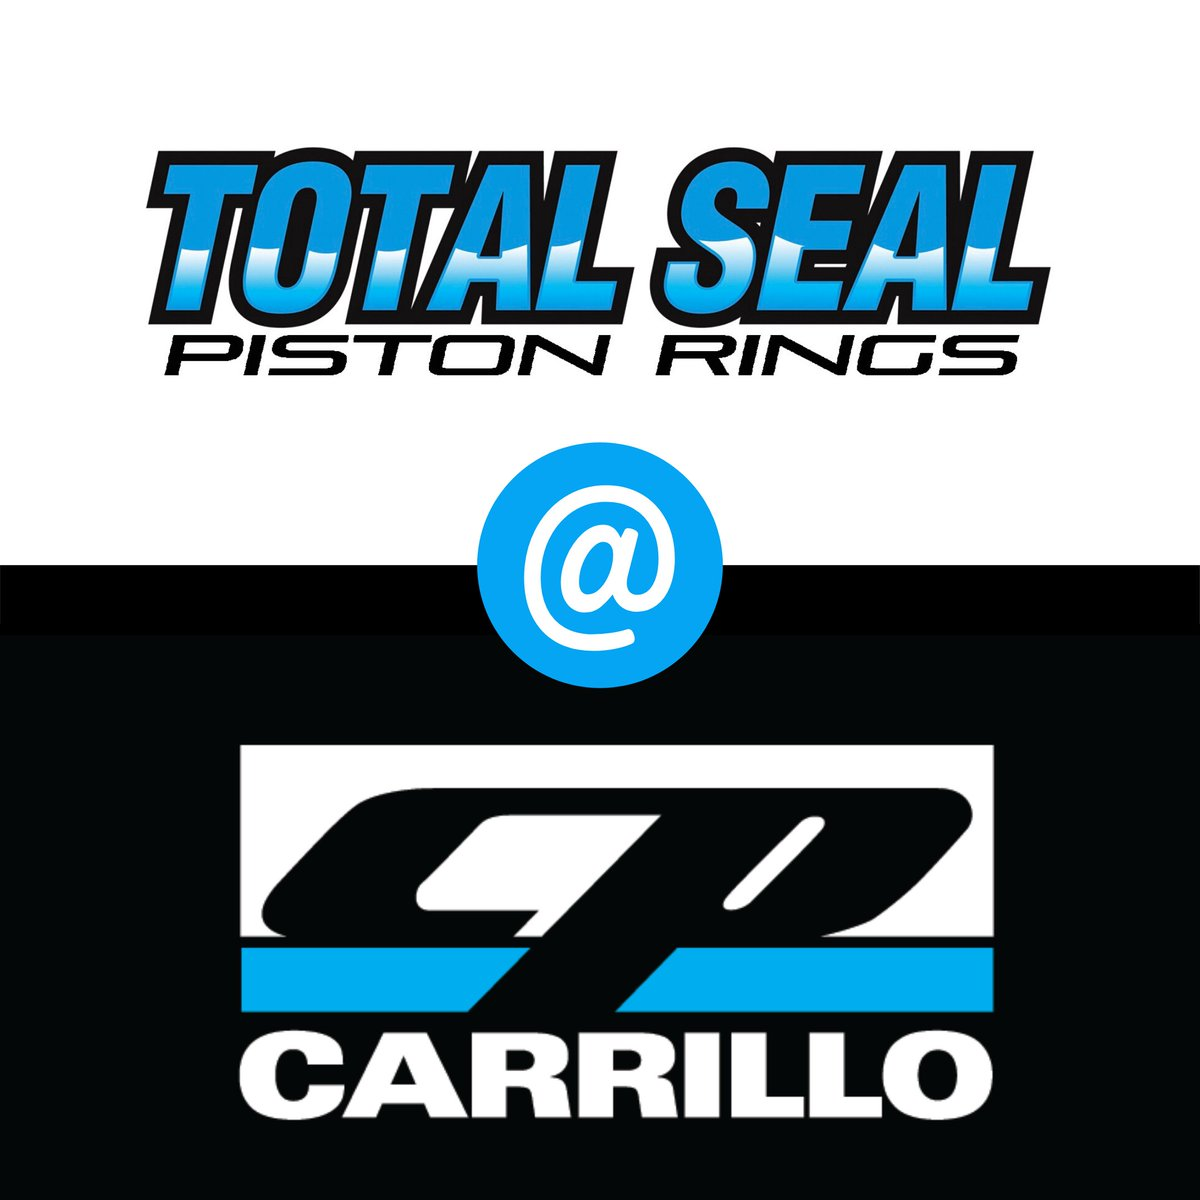 Did you know that CP Carrillo offers Total Seal piston rings as an option when ordering pistons? From our Diamond Finish rings to our Gas Ported rings, every Total Seal ring combination is available when you order pistons from CP Carrillo.  #Piston #PistonRings #EngineBuilding pic.twitter.com/GirTiP6Y2w